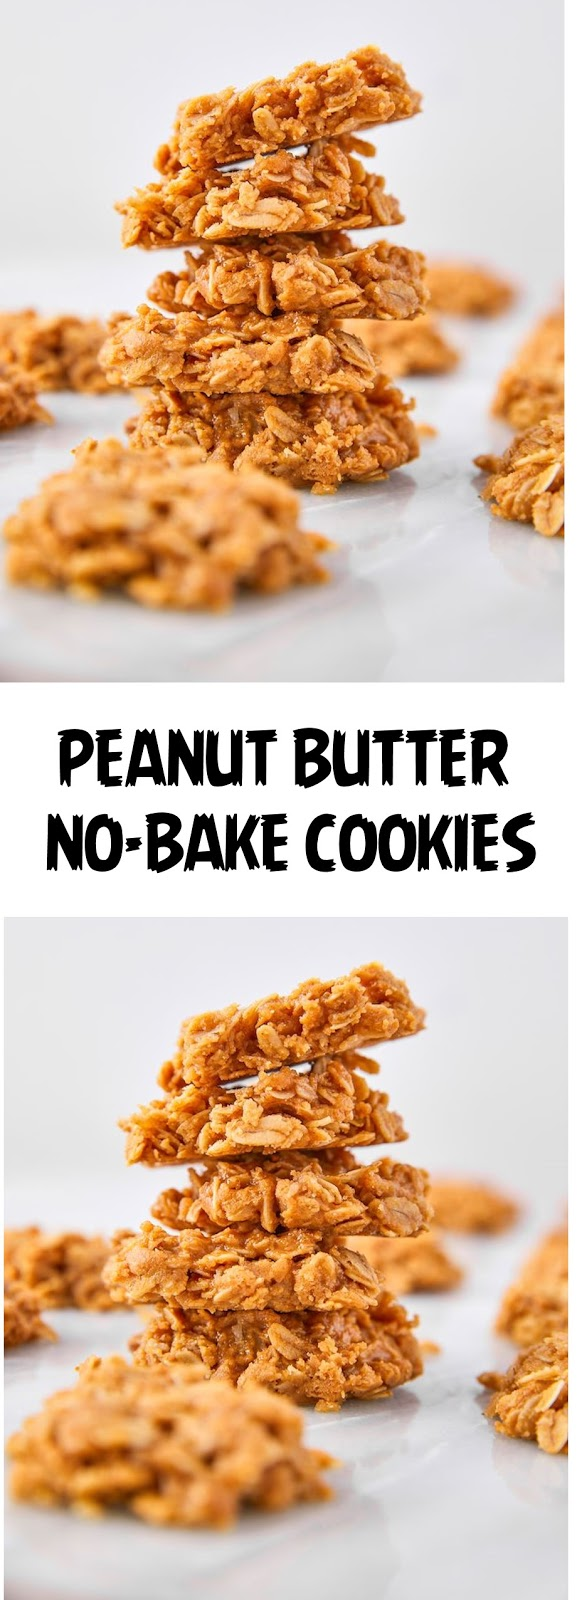 Peanut Butter No-Bake Cookies